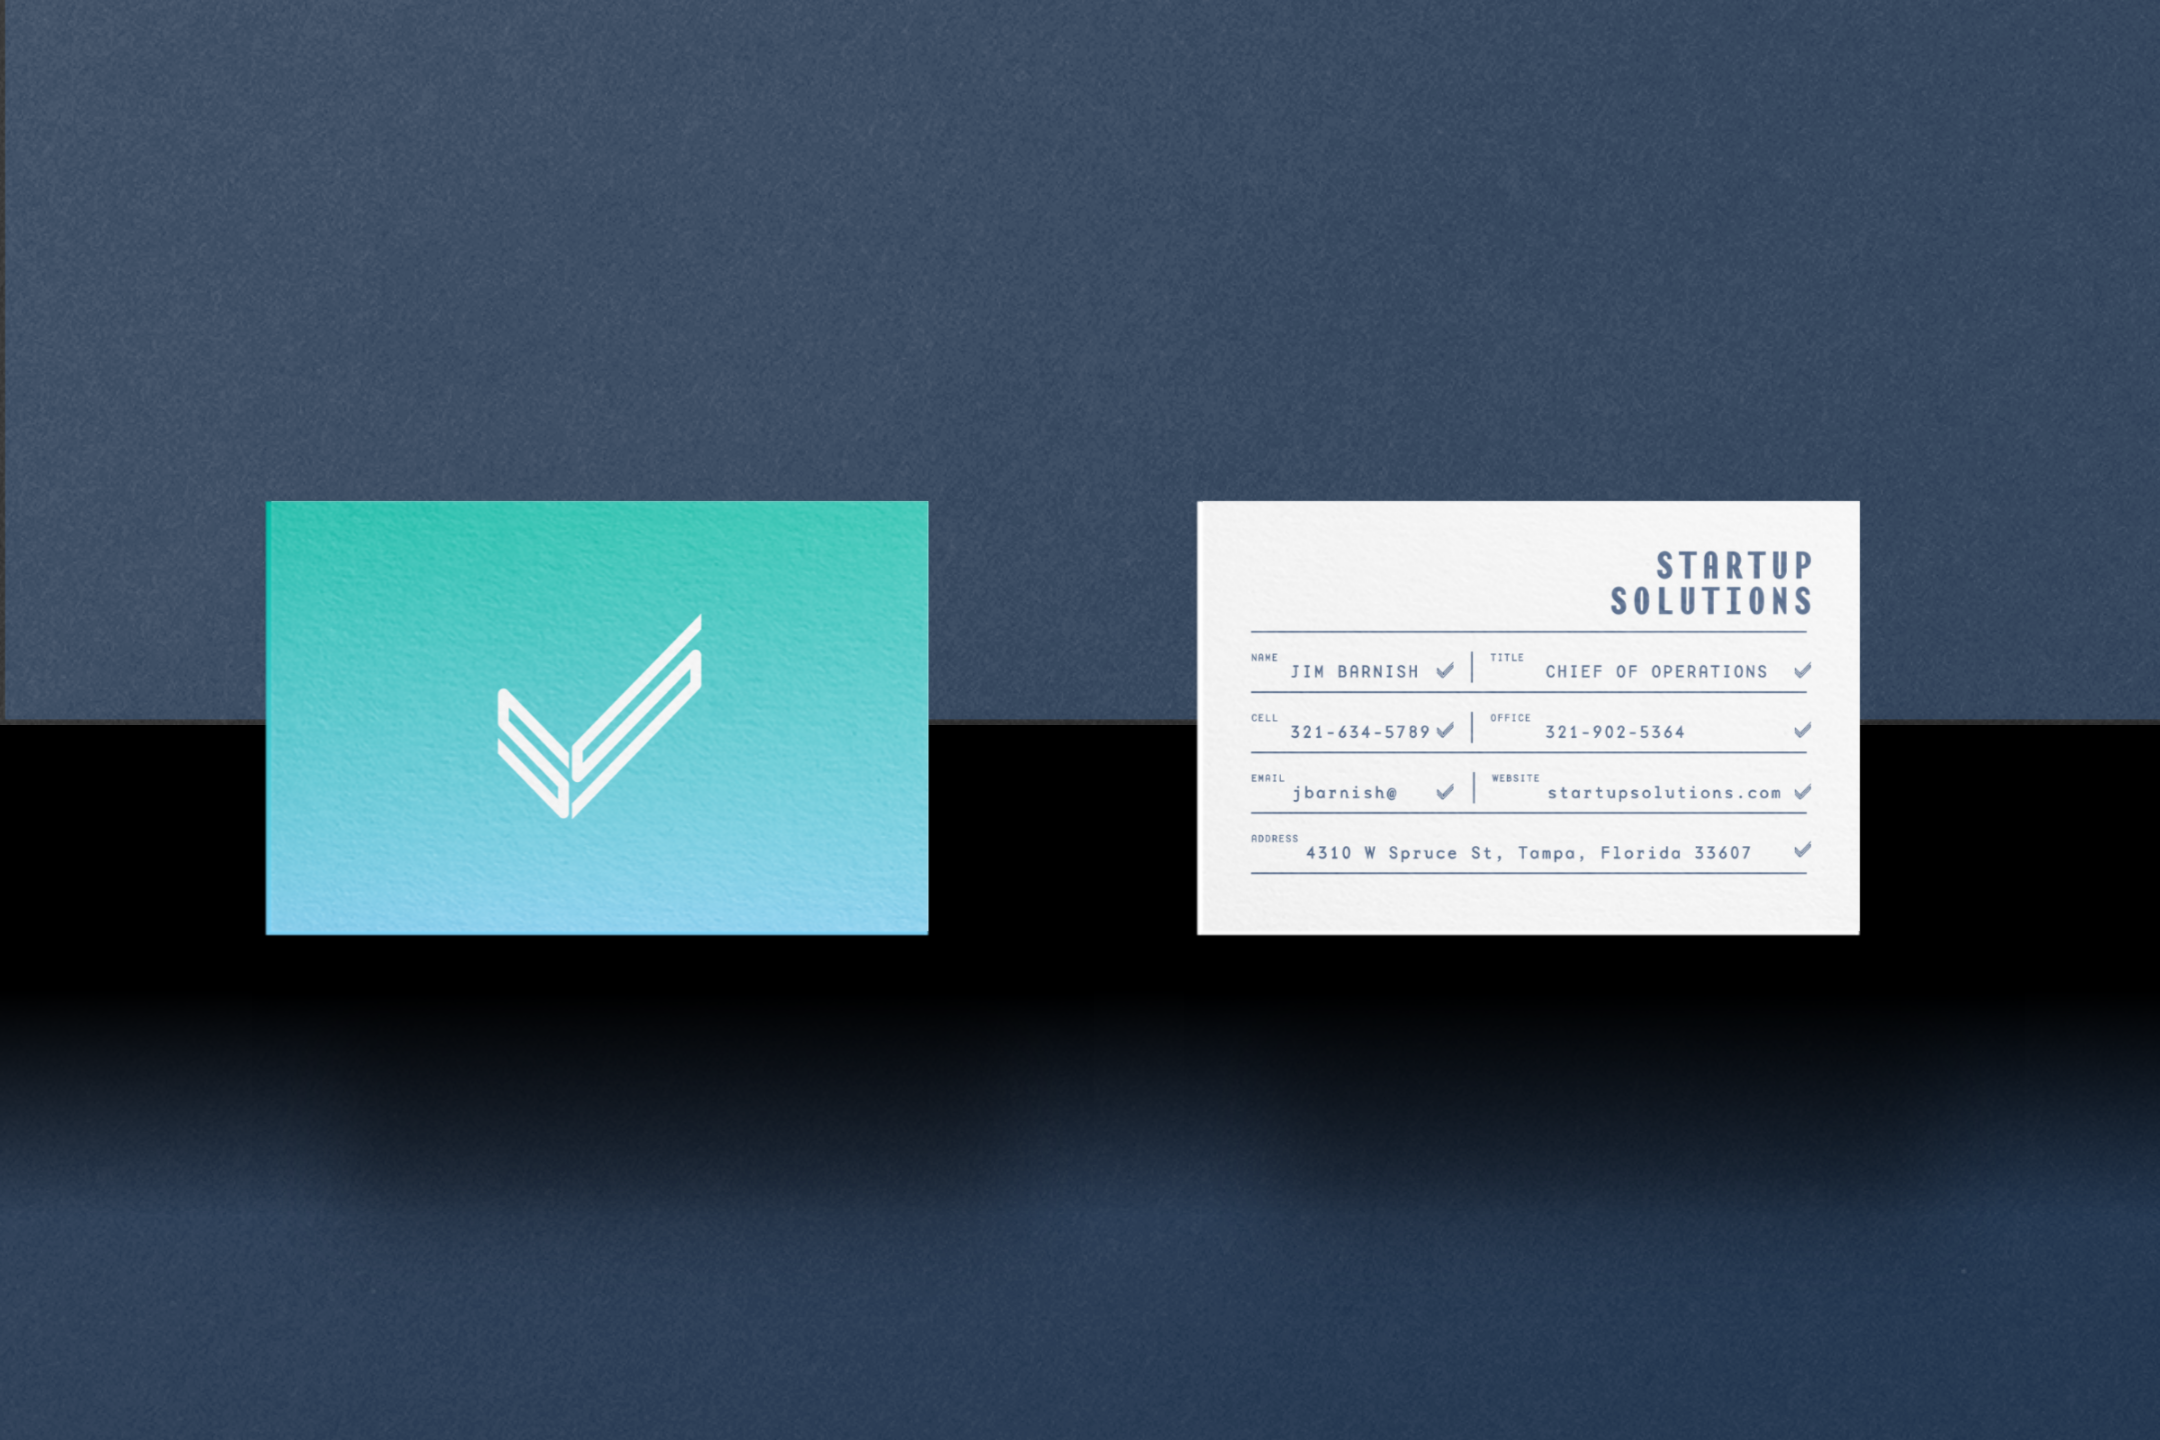 startup-solutions-business-cards.png